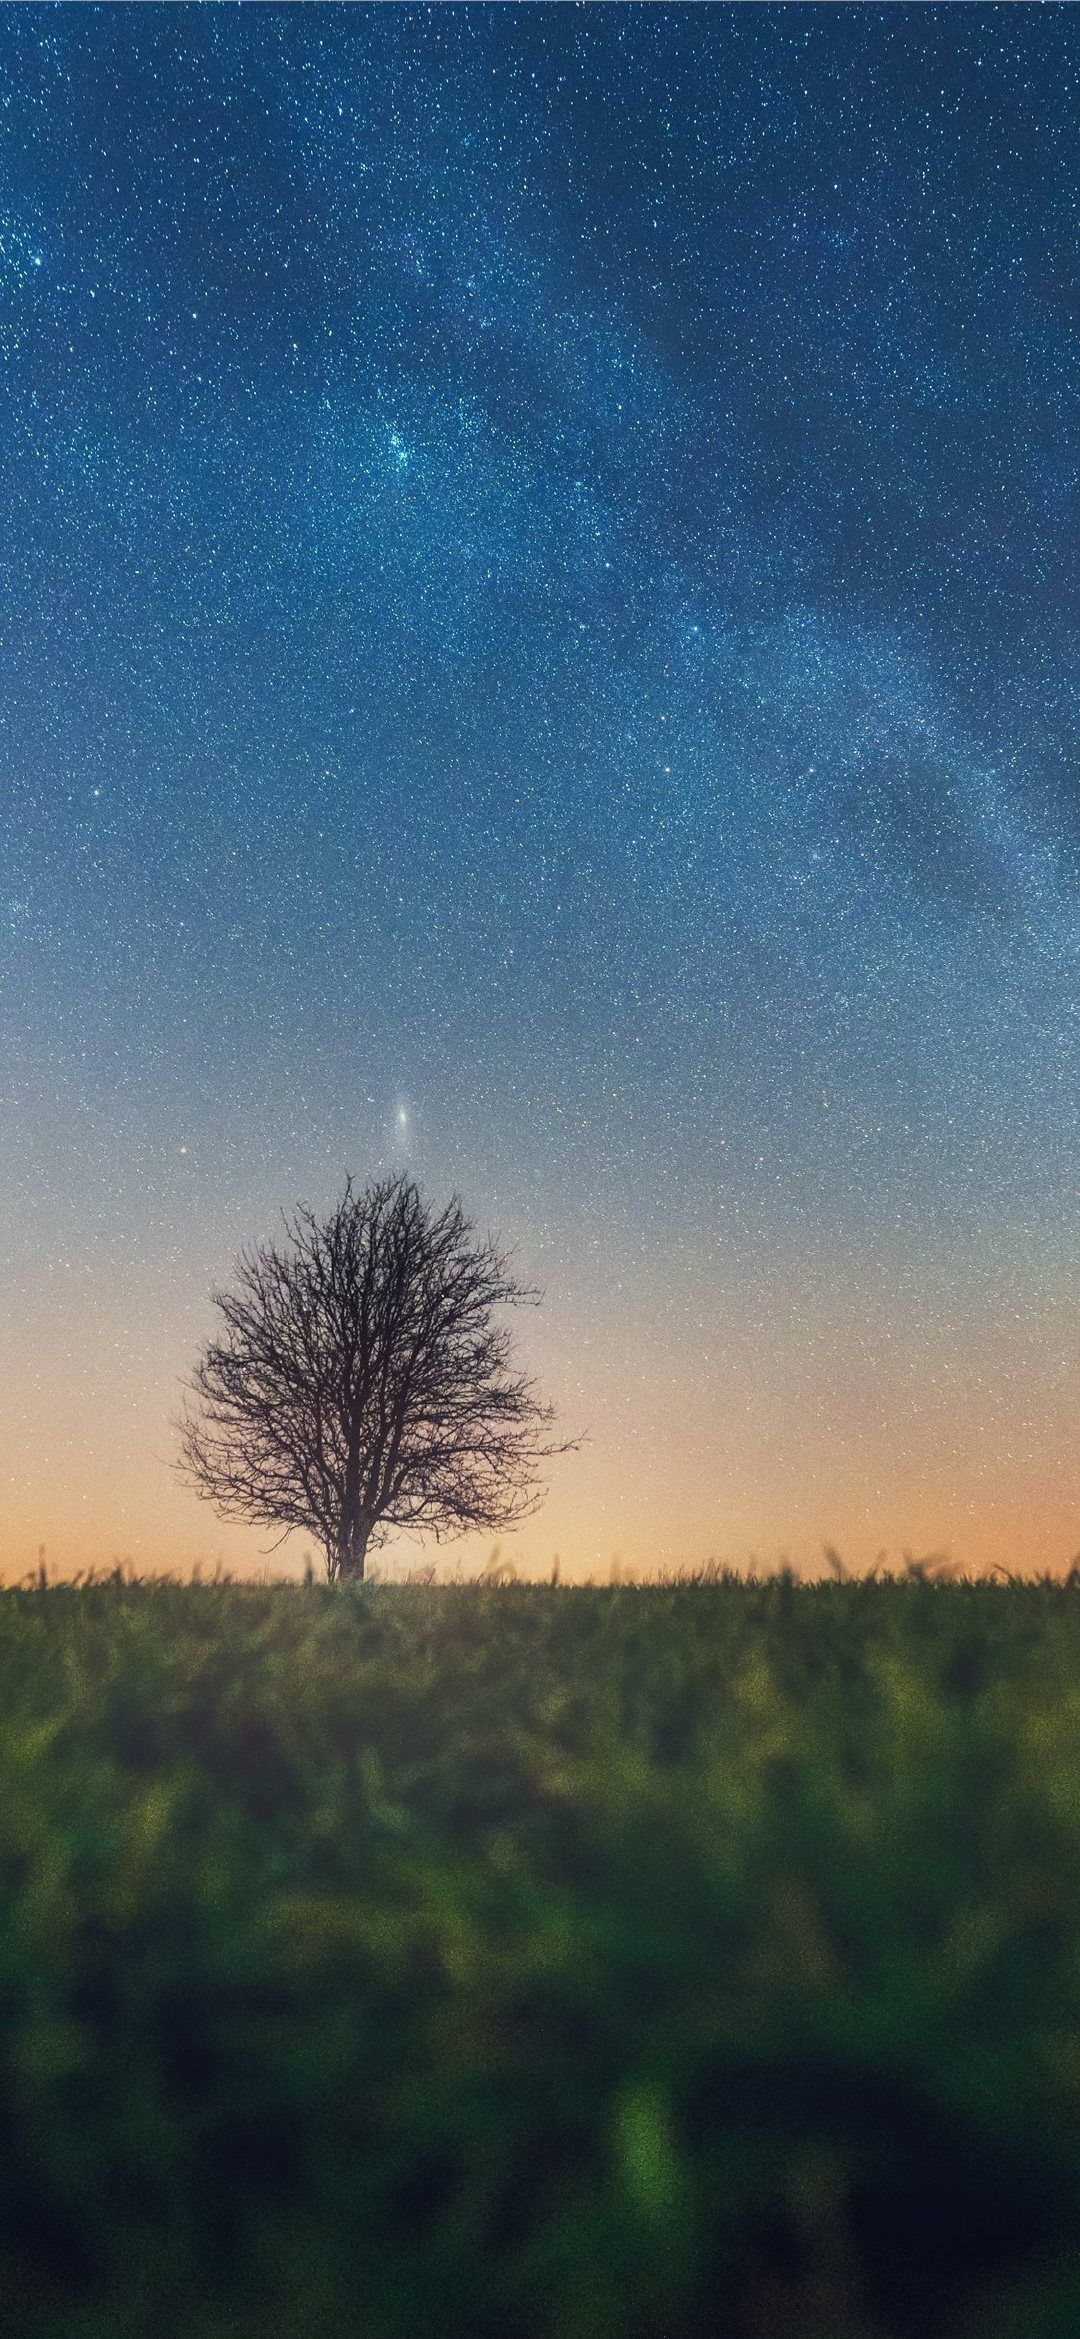 Iphone 11 Wallpaper Atmosphere Iphone 11 Wallpaper Nature Outdoors Night Astronomy Outerspace Germany Di 2020 Dengan Gambar Pemandangan Wallpaper Iphone Fantasi